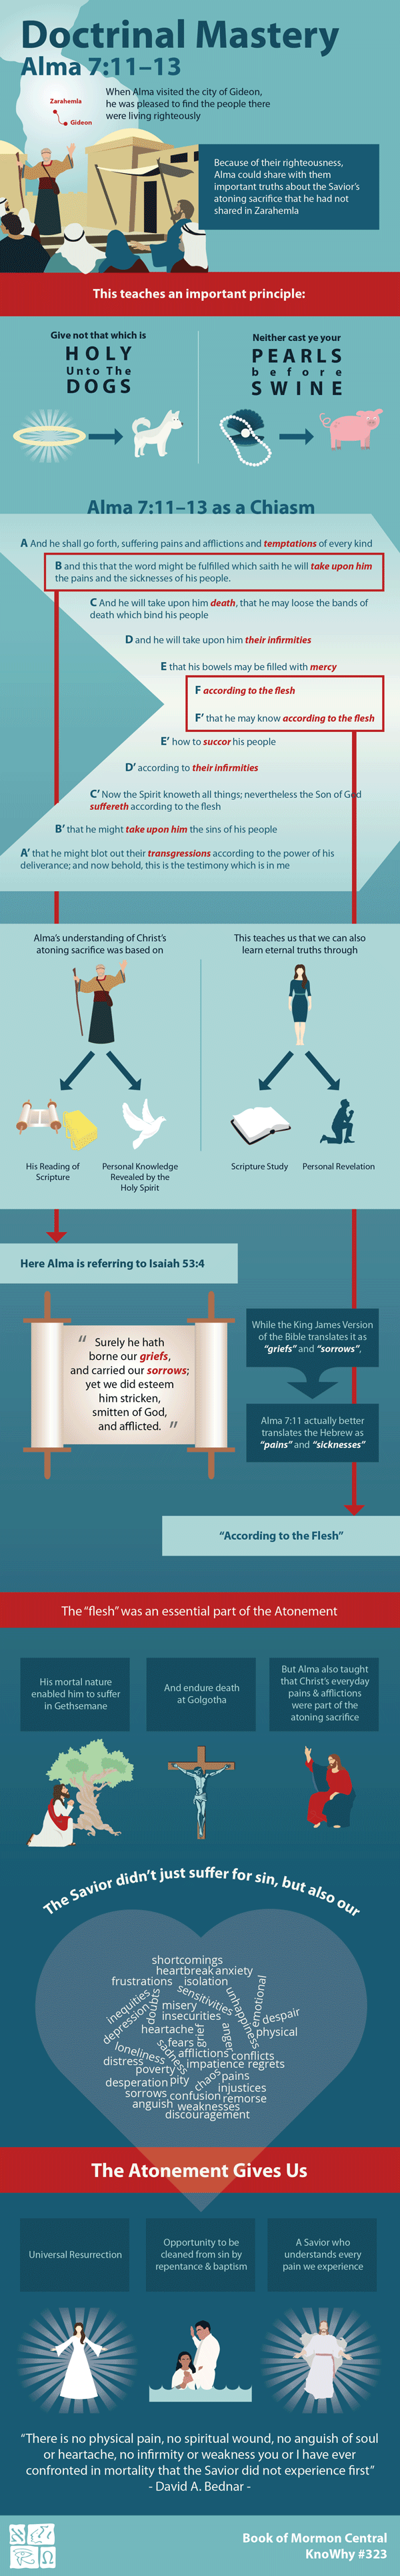 Doctrinal Mastery Alma 7:11-13 Infographic by Book of Mormon Central